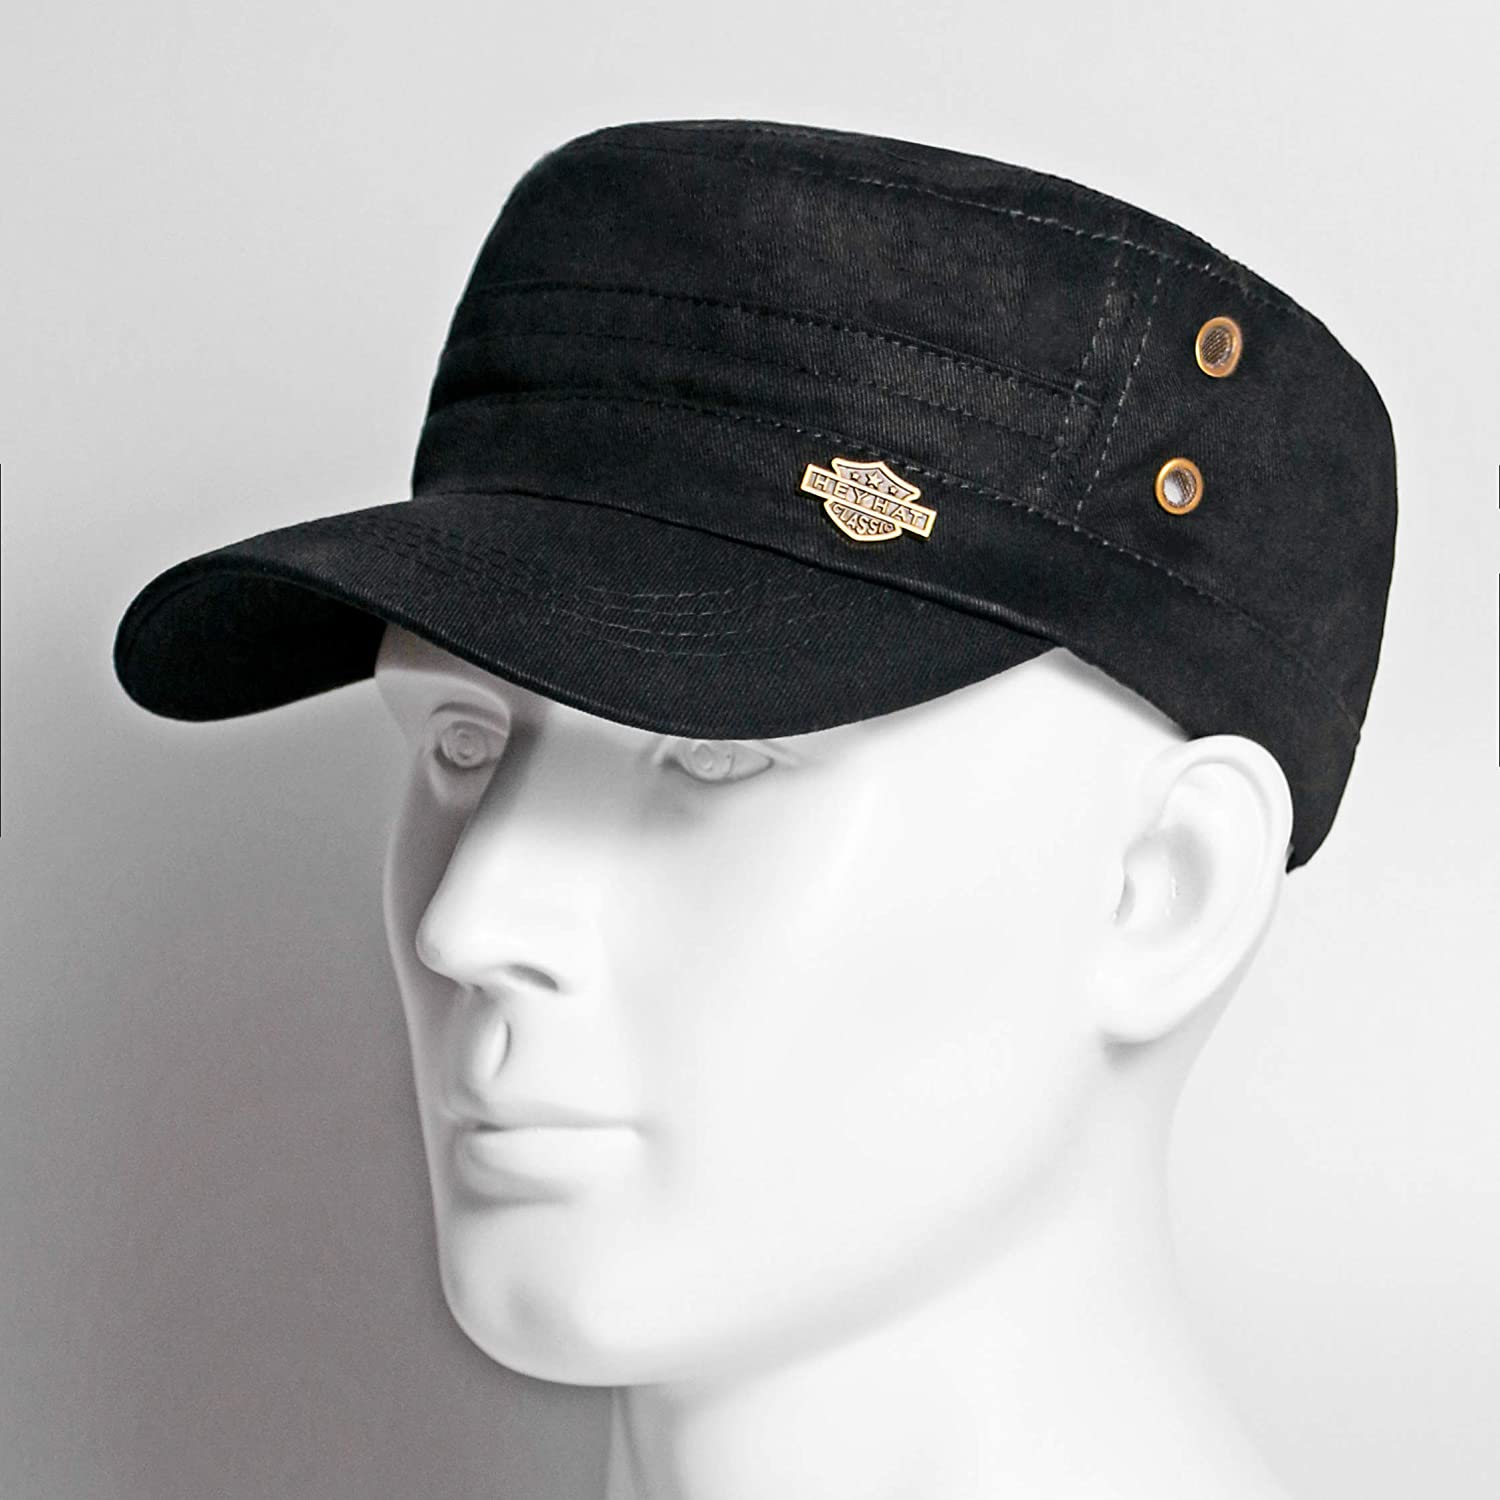 6-Cat Classic Style Baseball Cap All Cotton Made Adjustable Fits Men Women Low Profile Hat